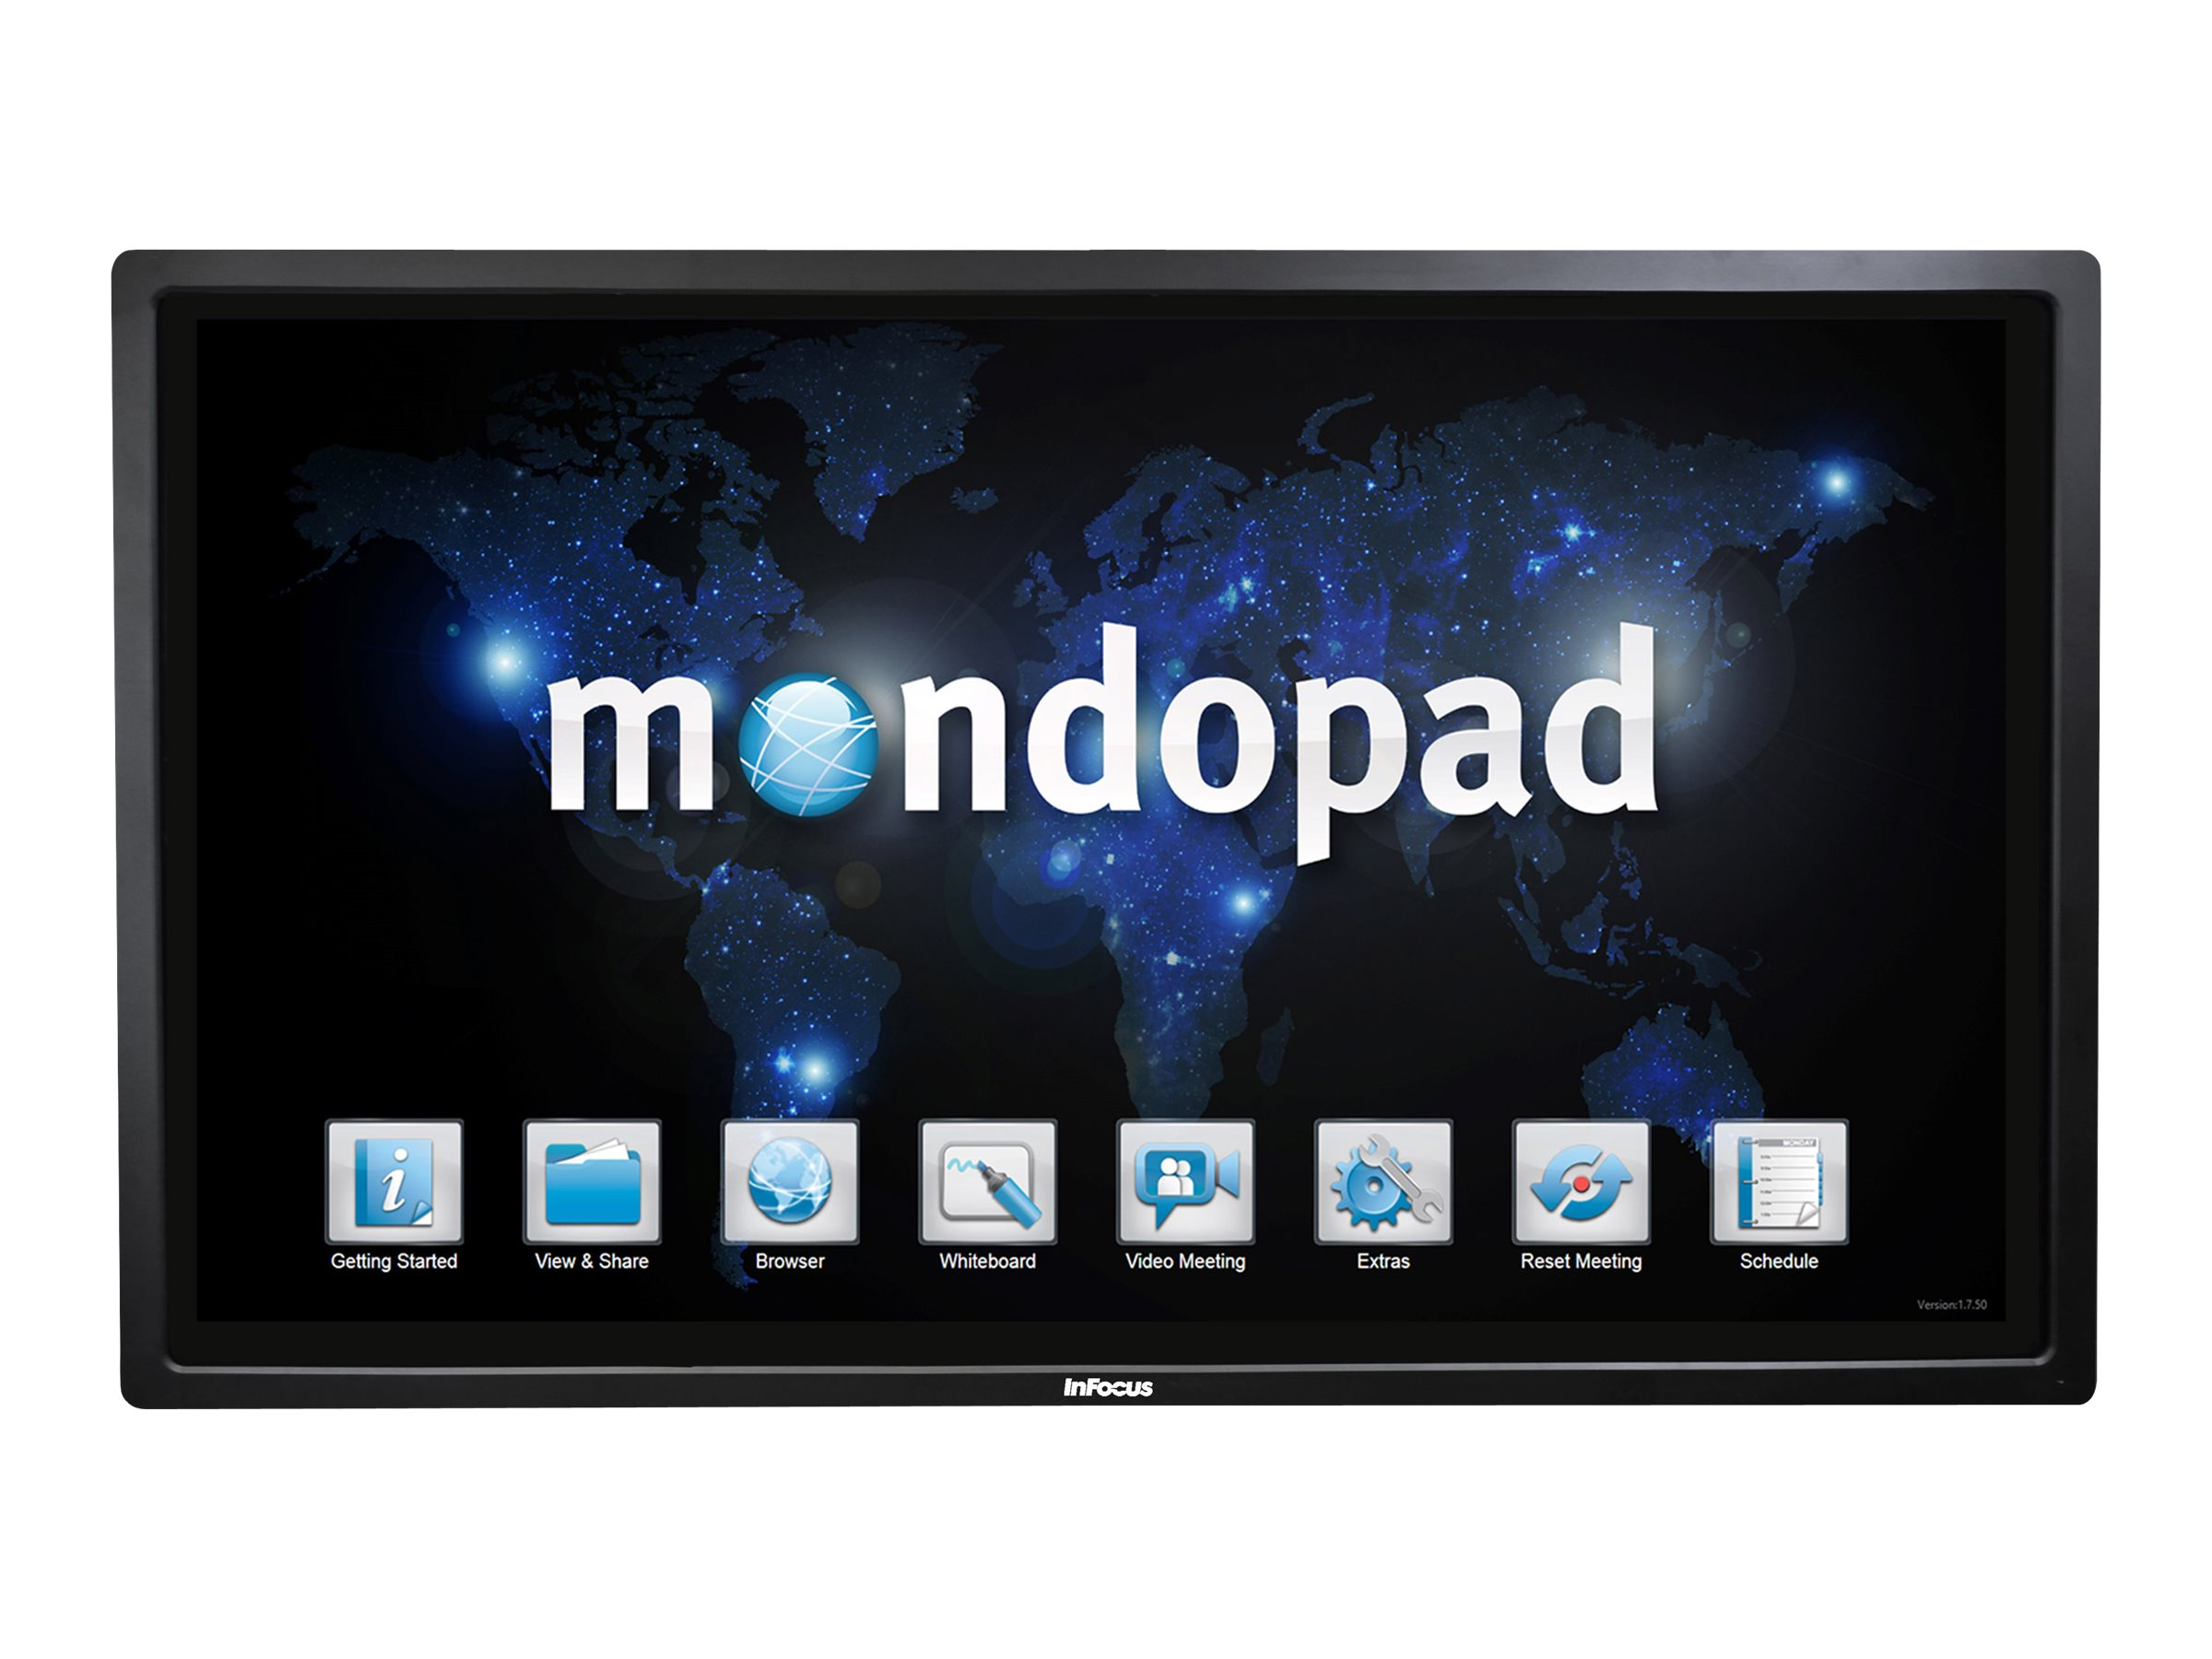 InFocus 57 Mondopad Full HD LED-LCD Touchscreen Display, INF5720